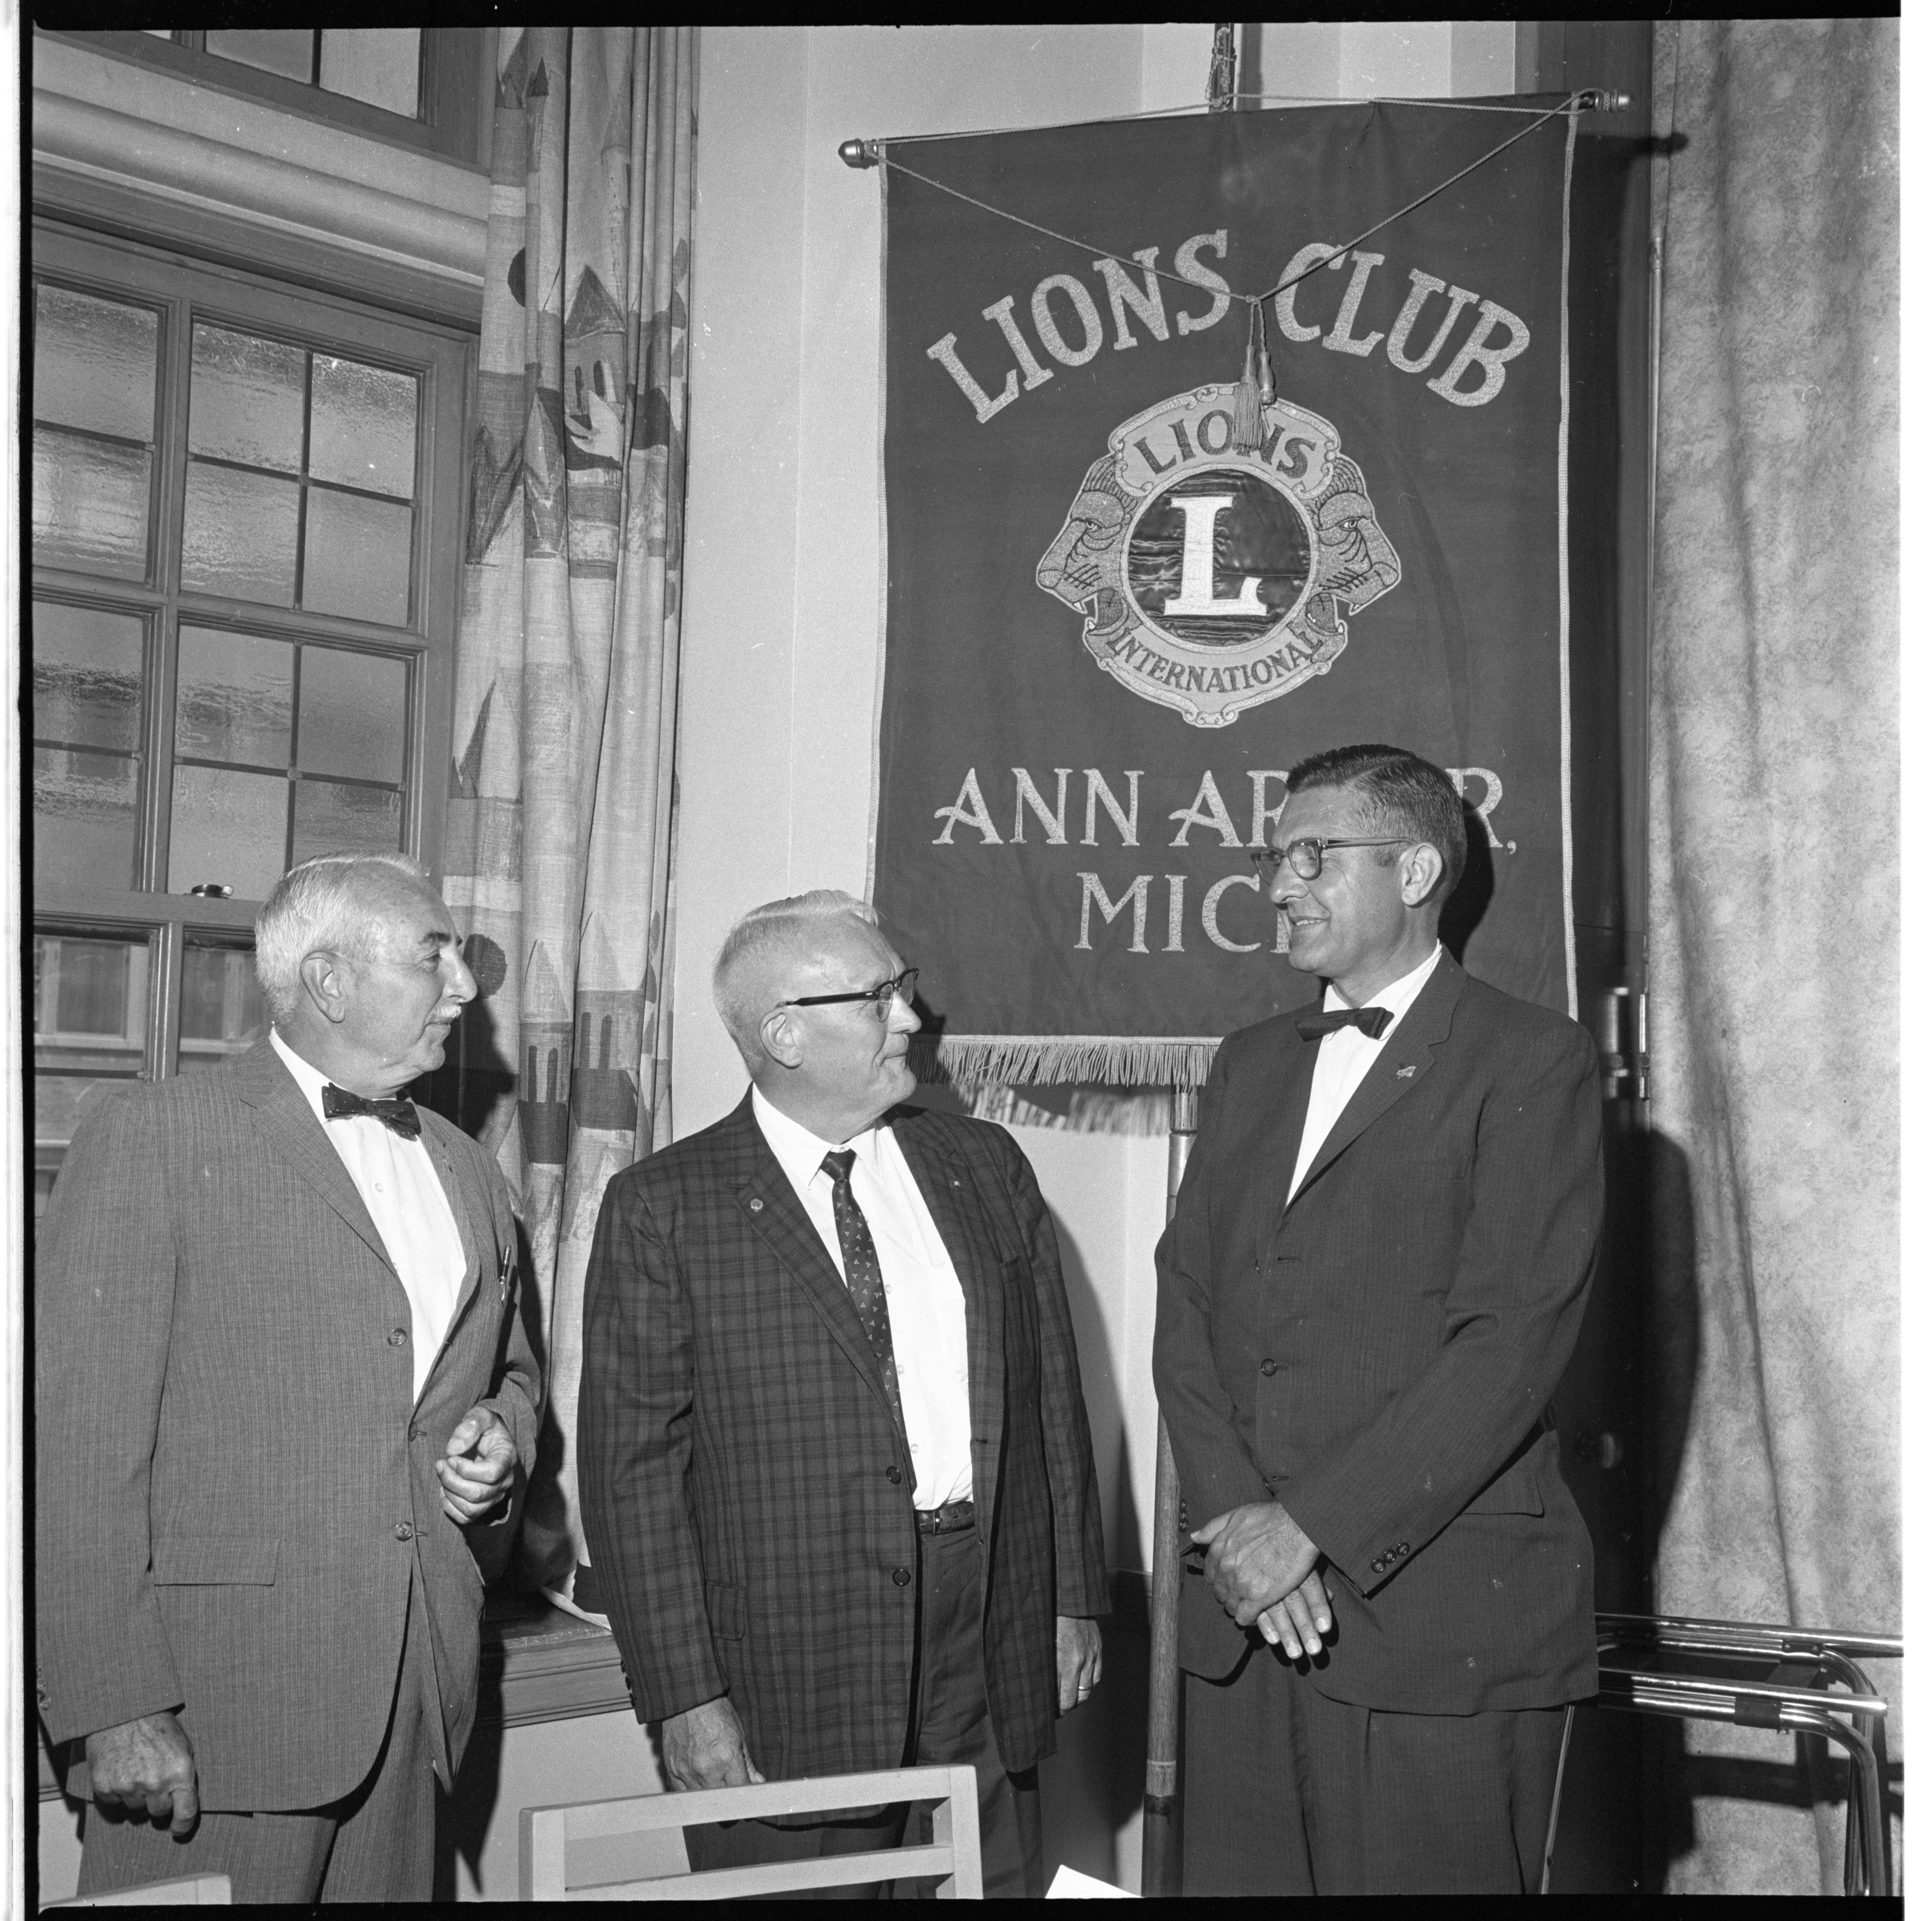 Robert Austin, Dr. Ted Hunter, & Dr. John Henderson Discuss The Michigan Eye Bank At An Ann Arbor Lions Club Event, July 1964 image